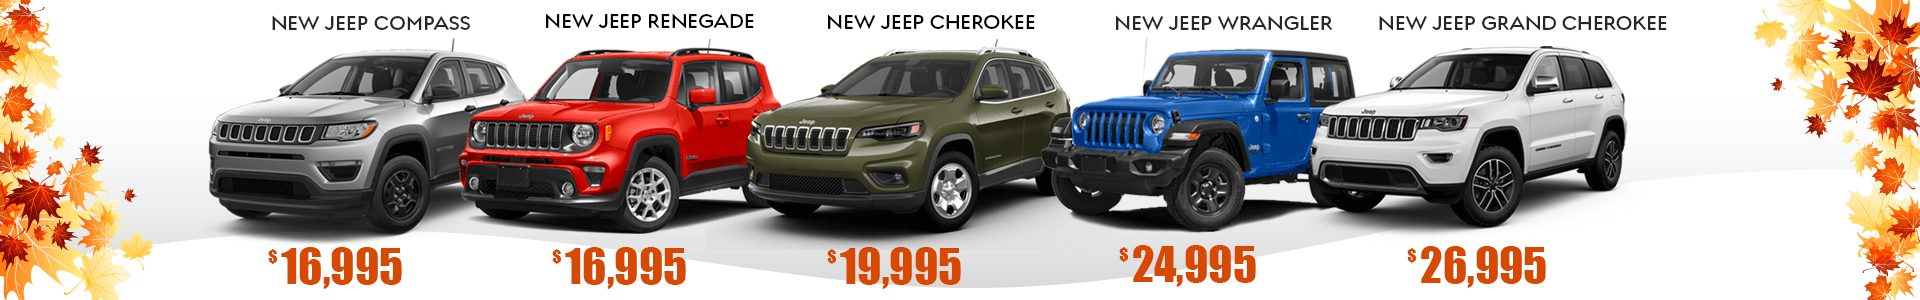 All Jeep Brand